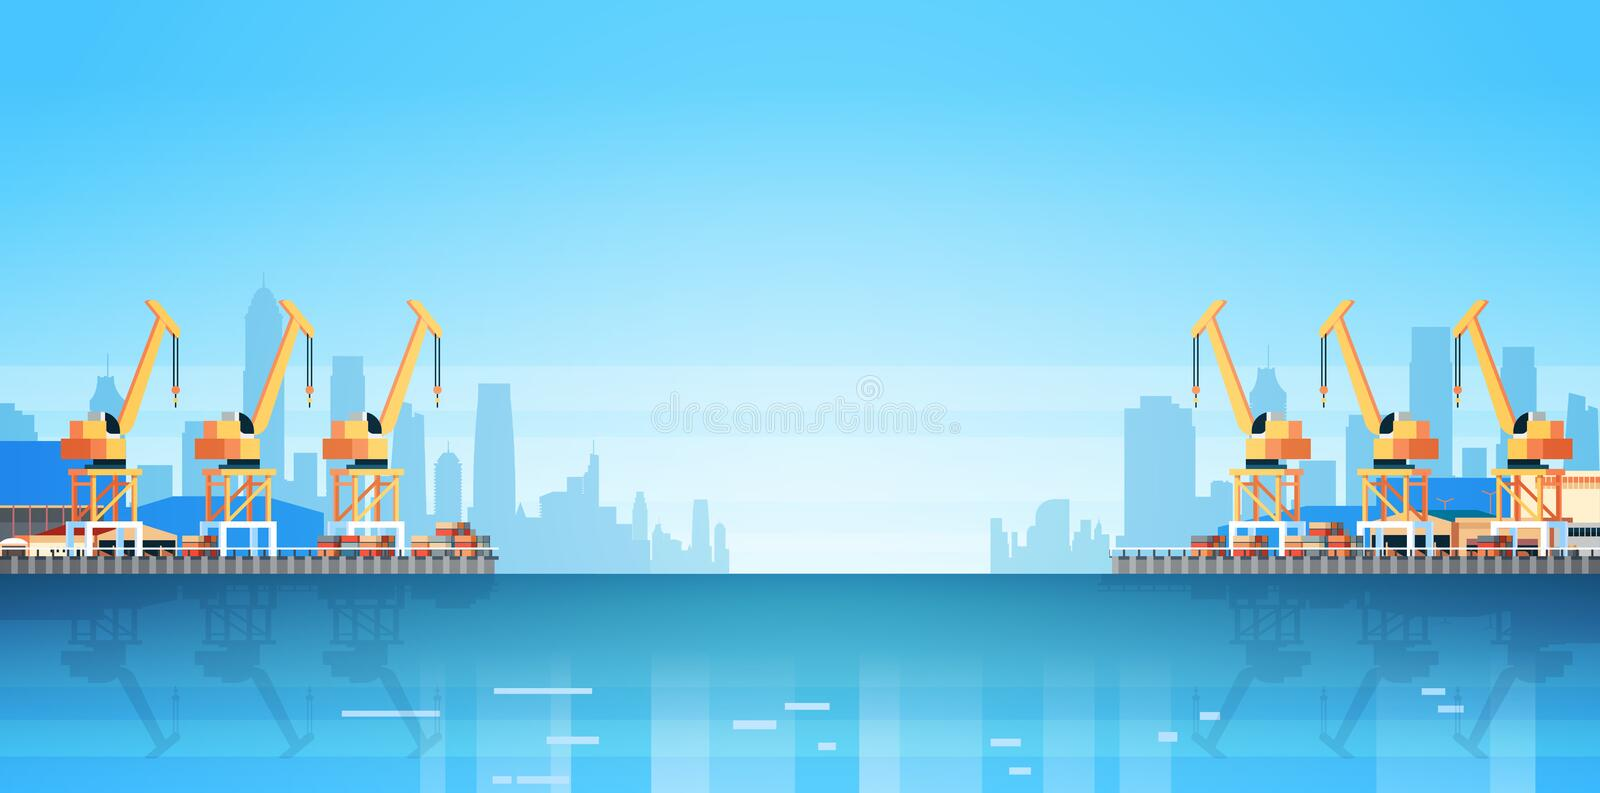 Industrial sea port cargo logistics container import export crane water delivery transportation concept shipping dock vector illustration